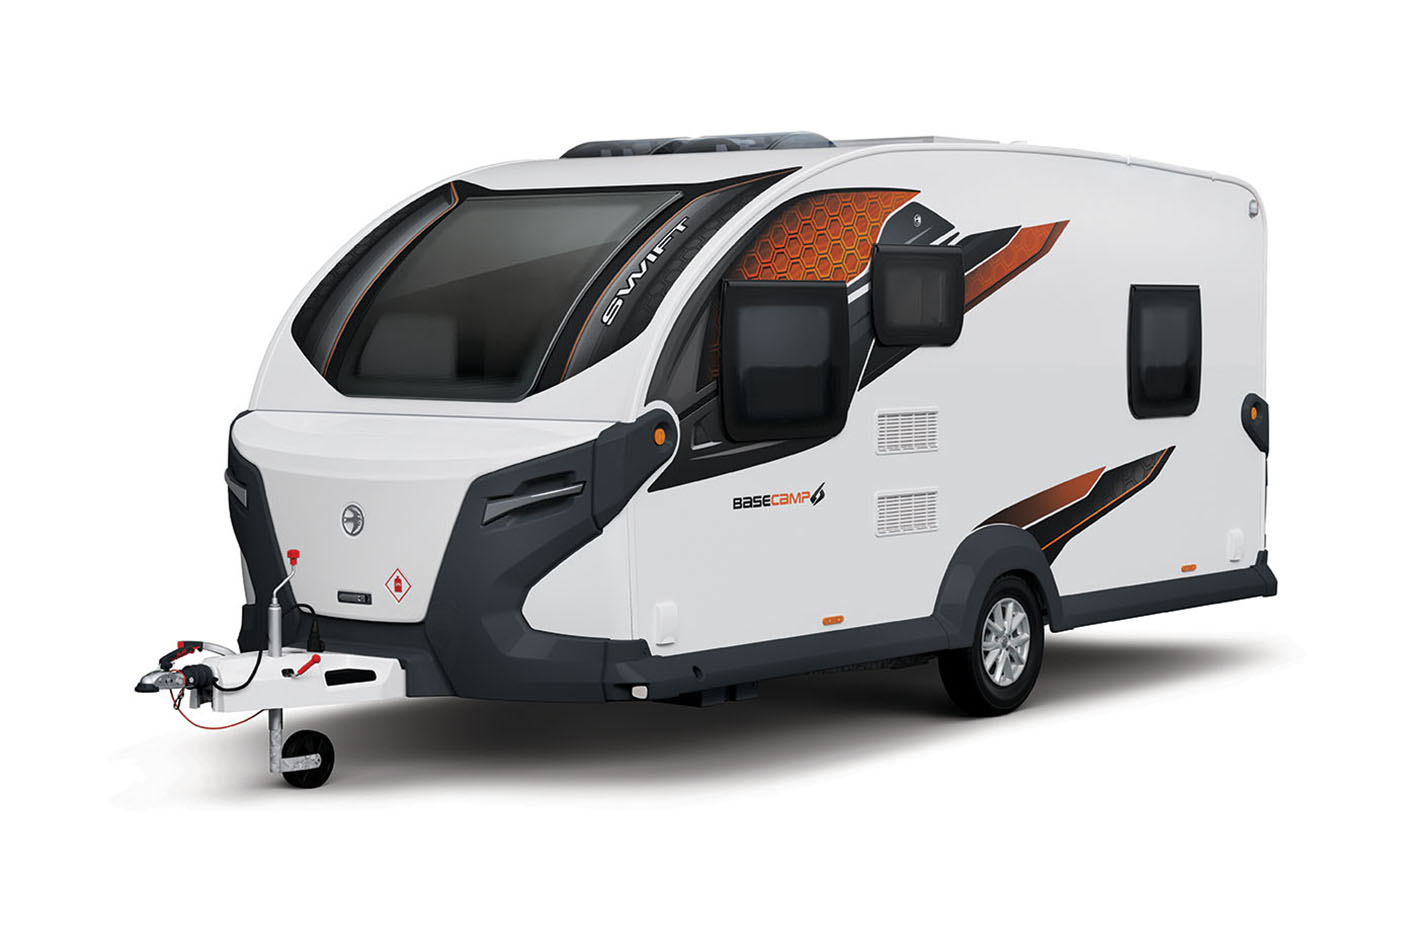 Swift Group's Basecamp 6 launches this month. Image courtesy of Swift Group